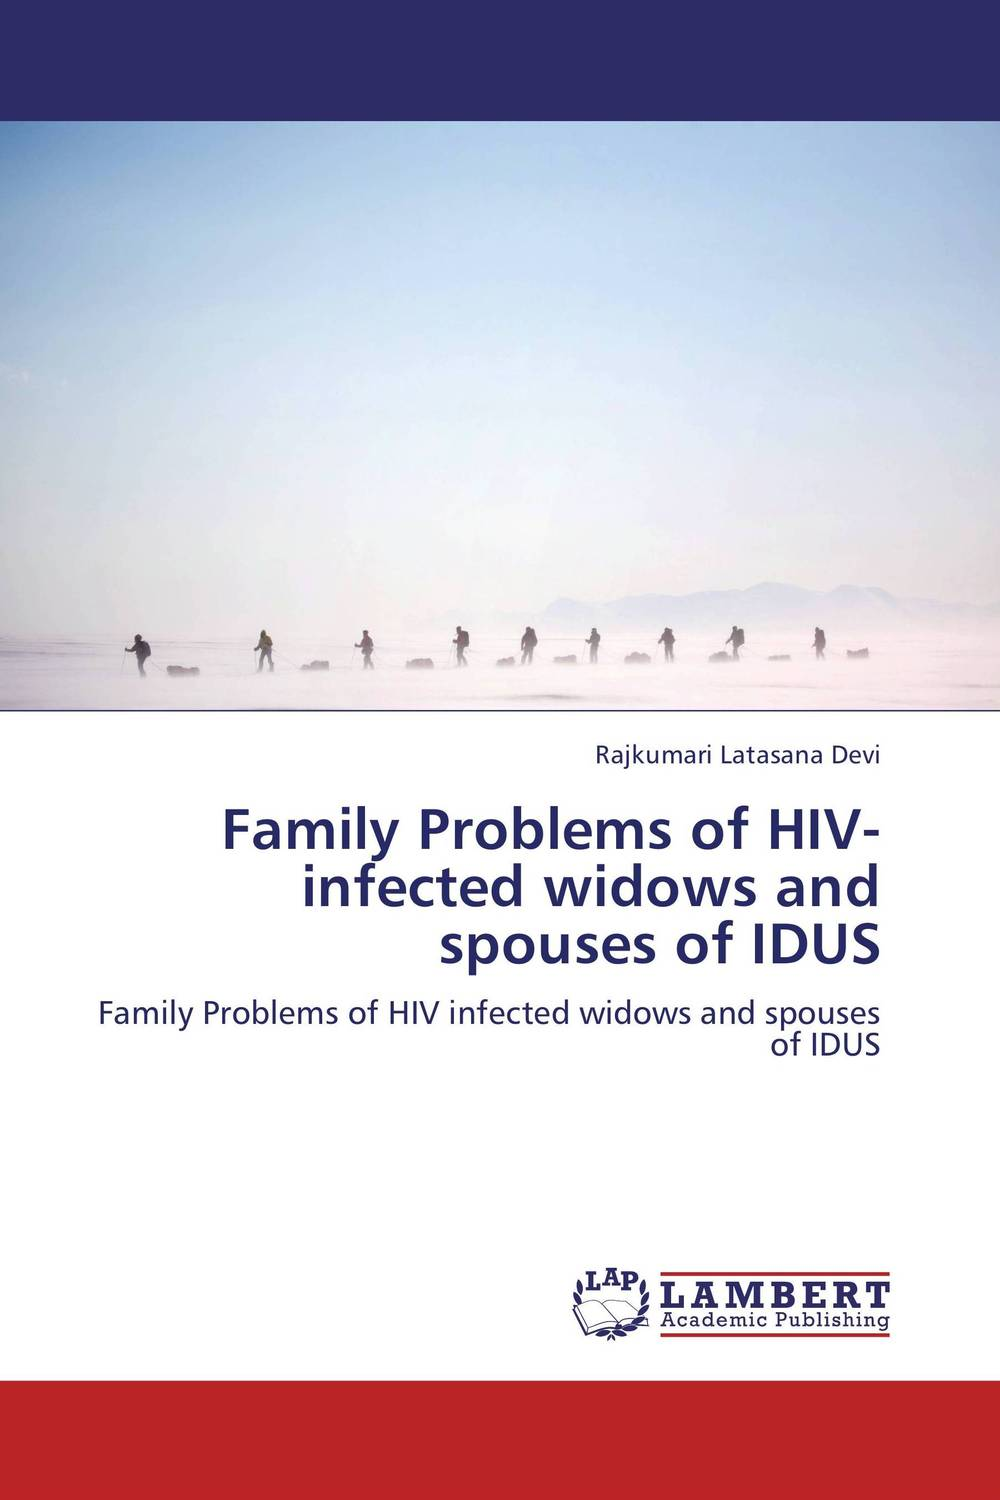 Family Problems of HIV-infected widows and spouses of IDUS hiv aids in manipur